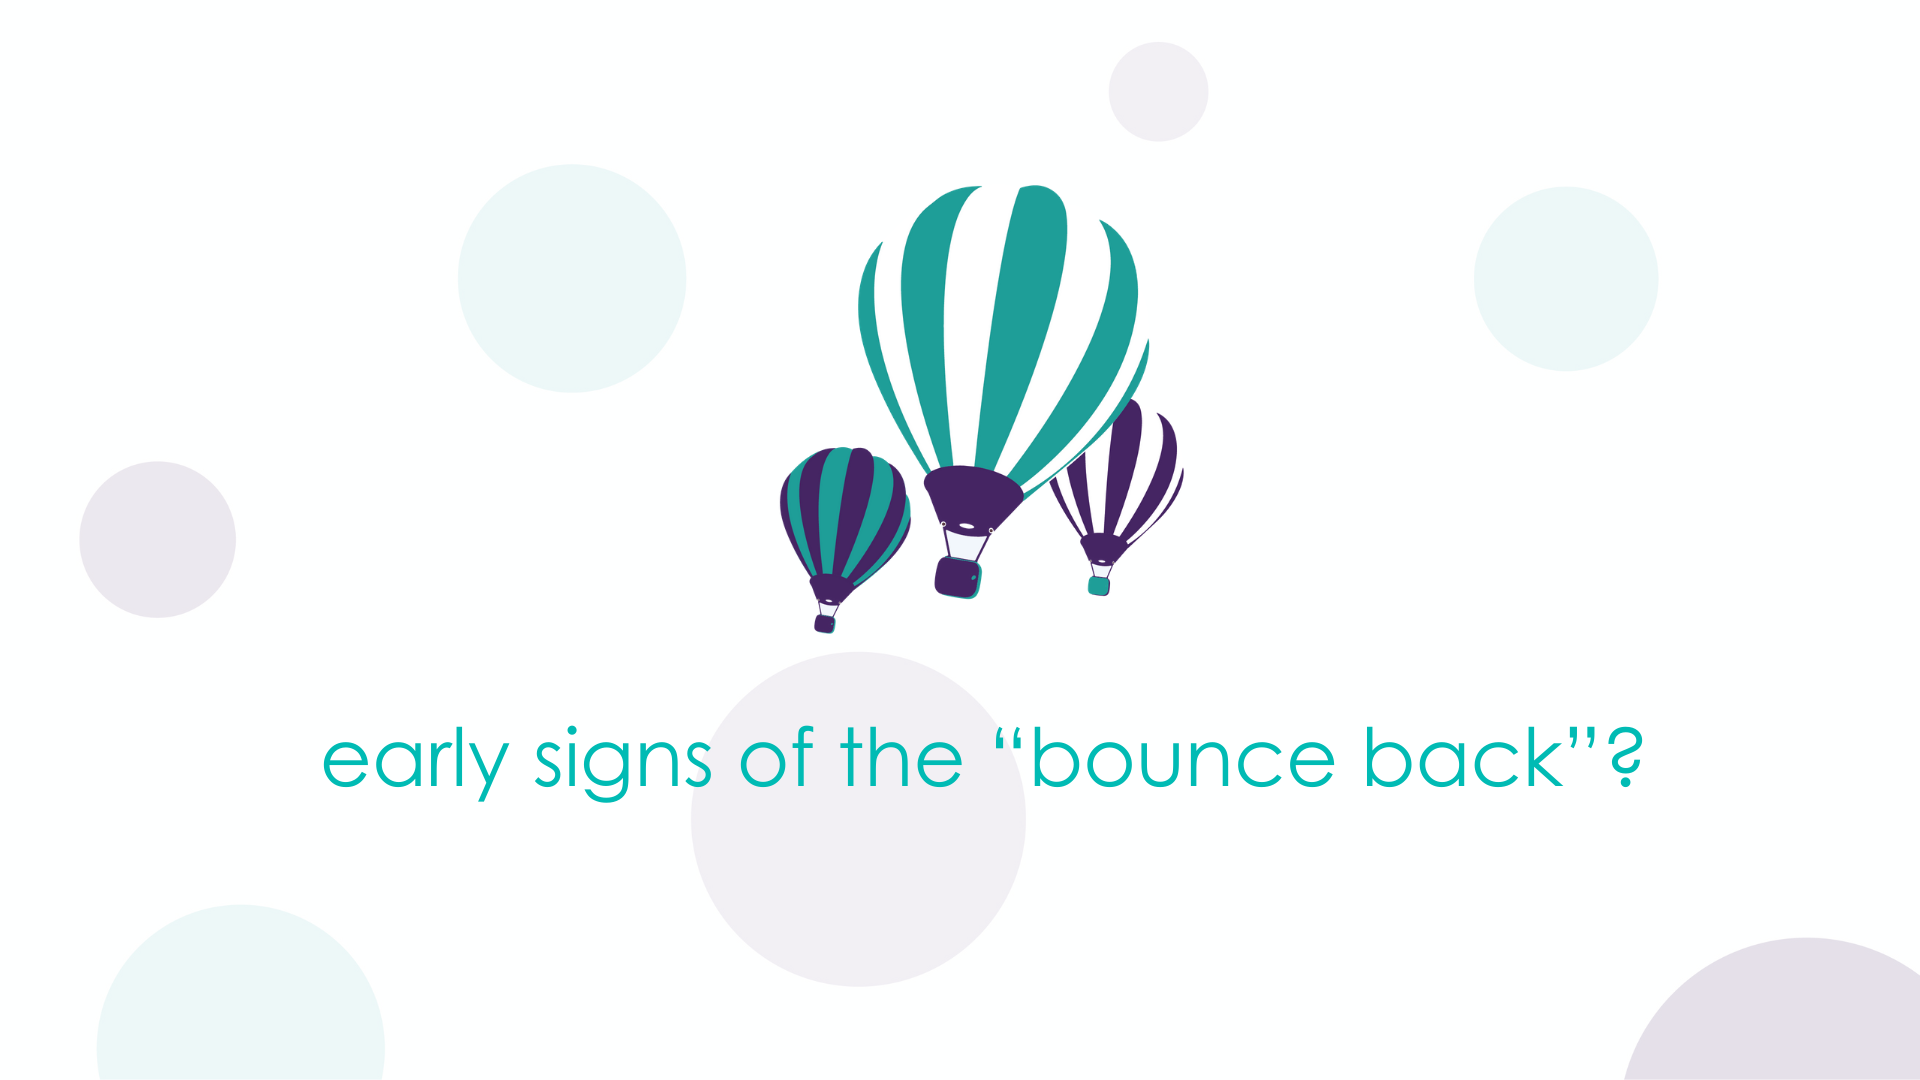 """early signs of the """"bounce back""""?"""